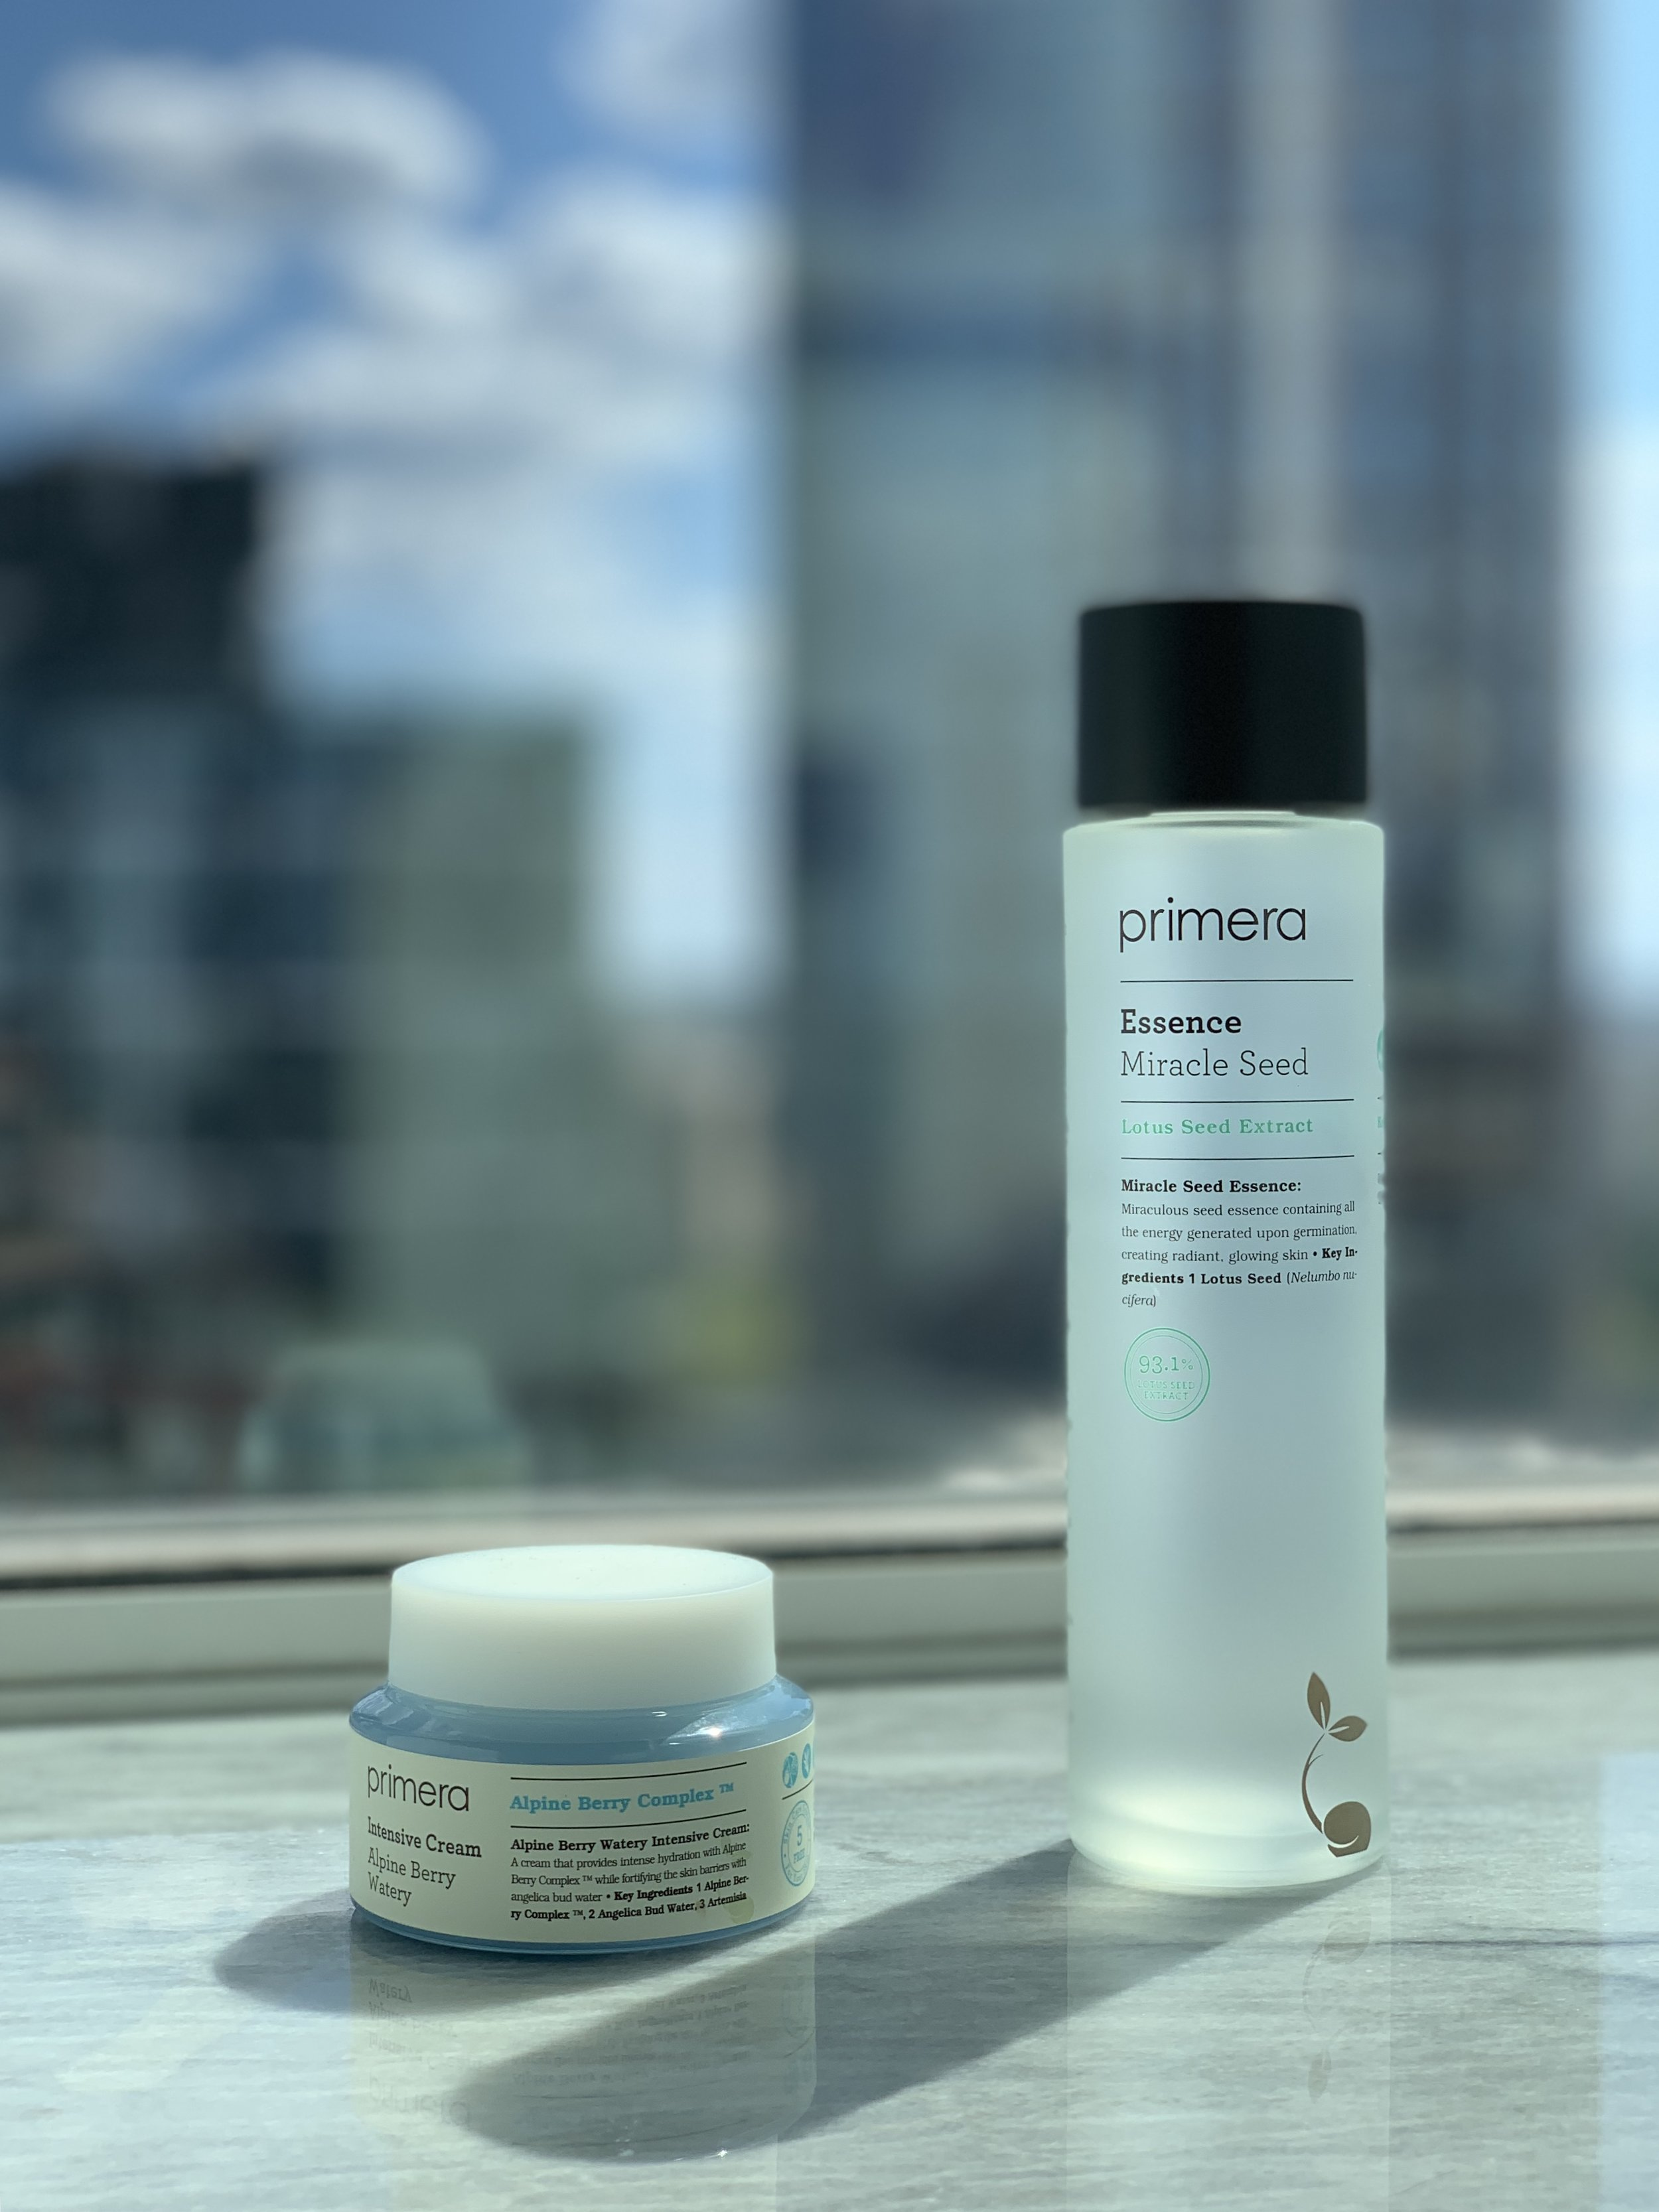 Primera is a part of a wave of new, clean Korean skin care.